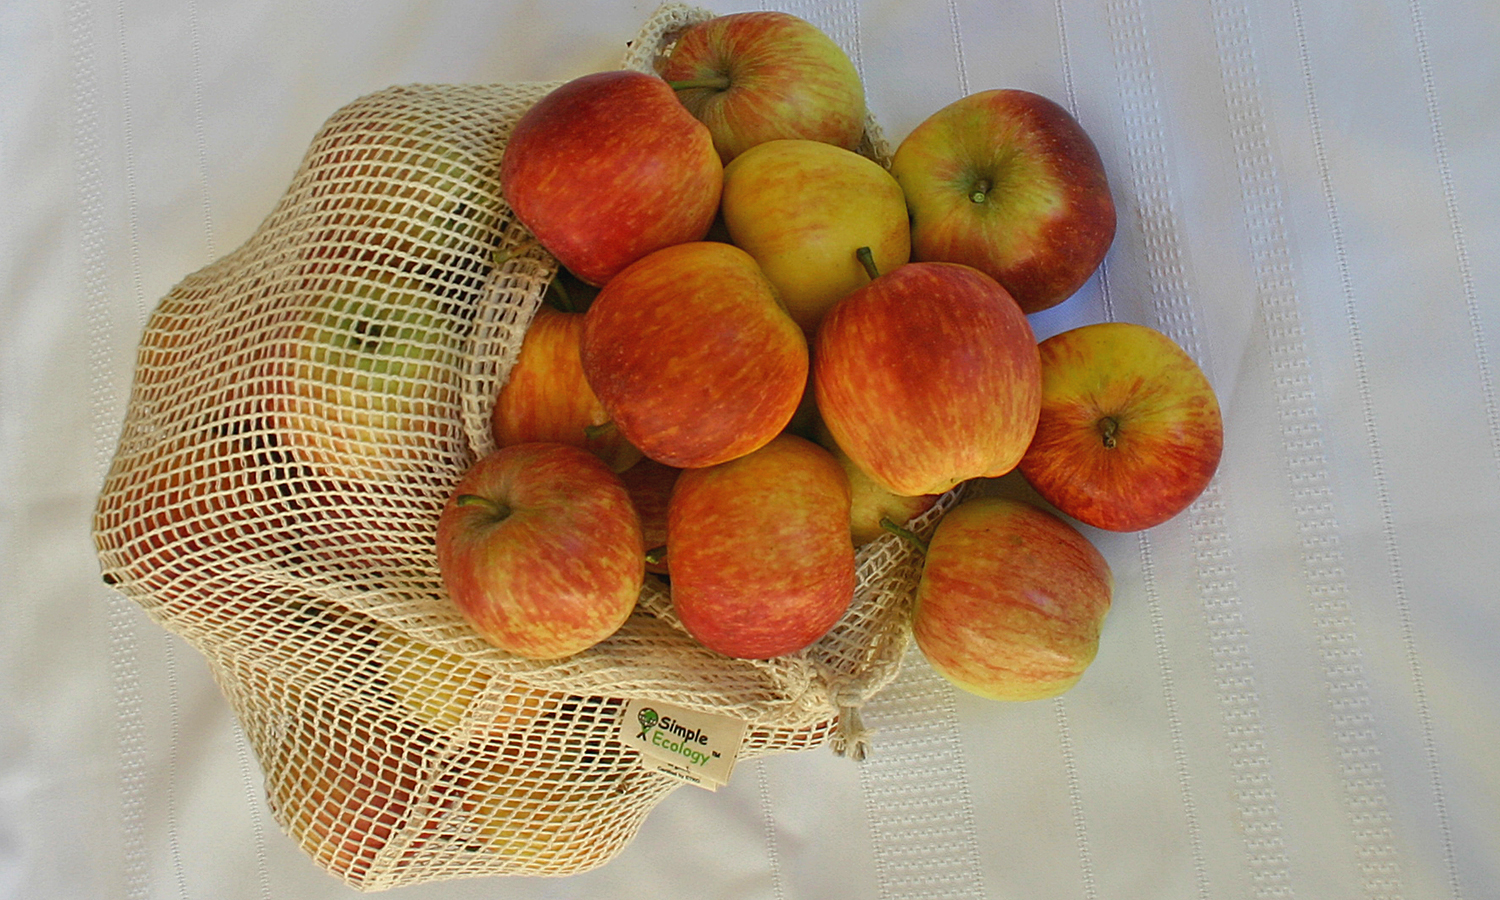 Mesh Red Delicious.jpg